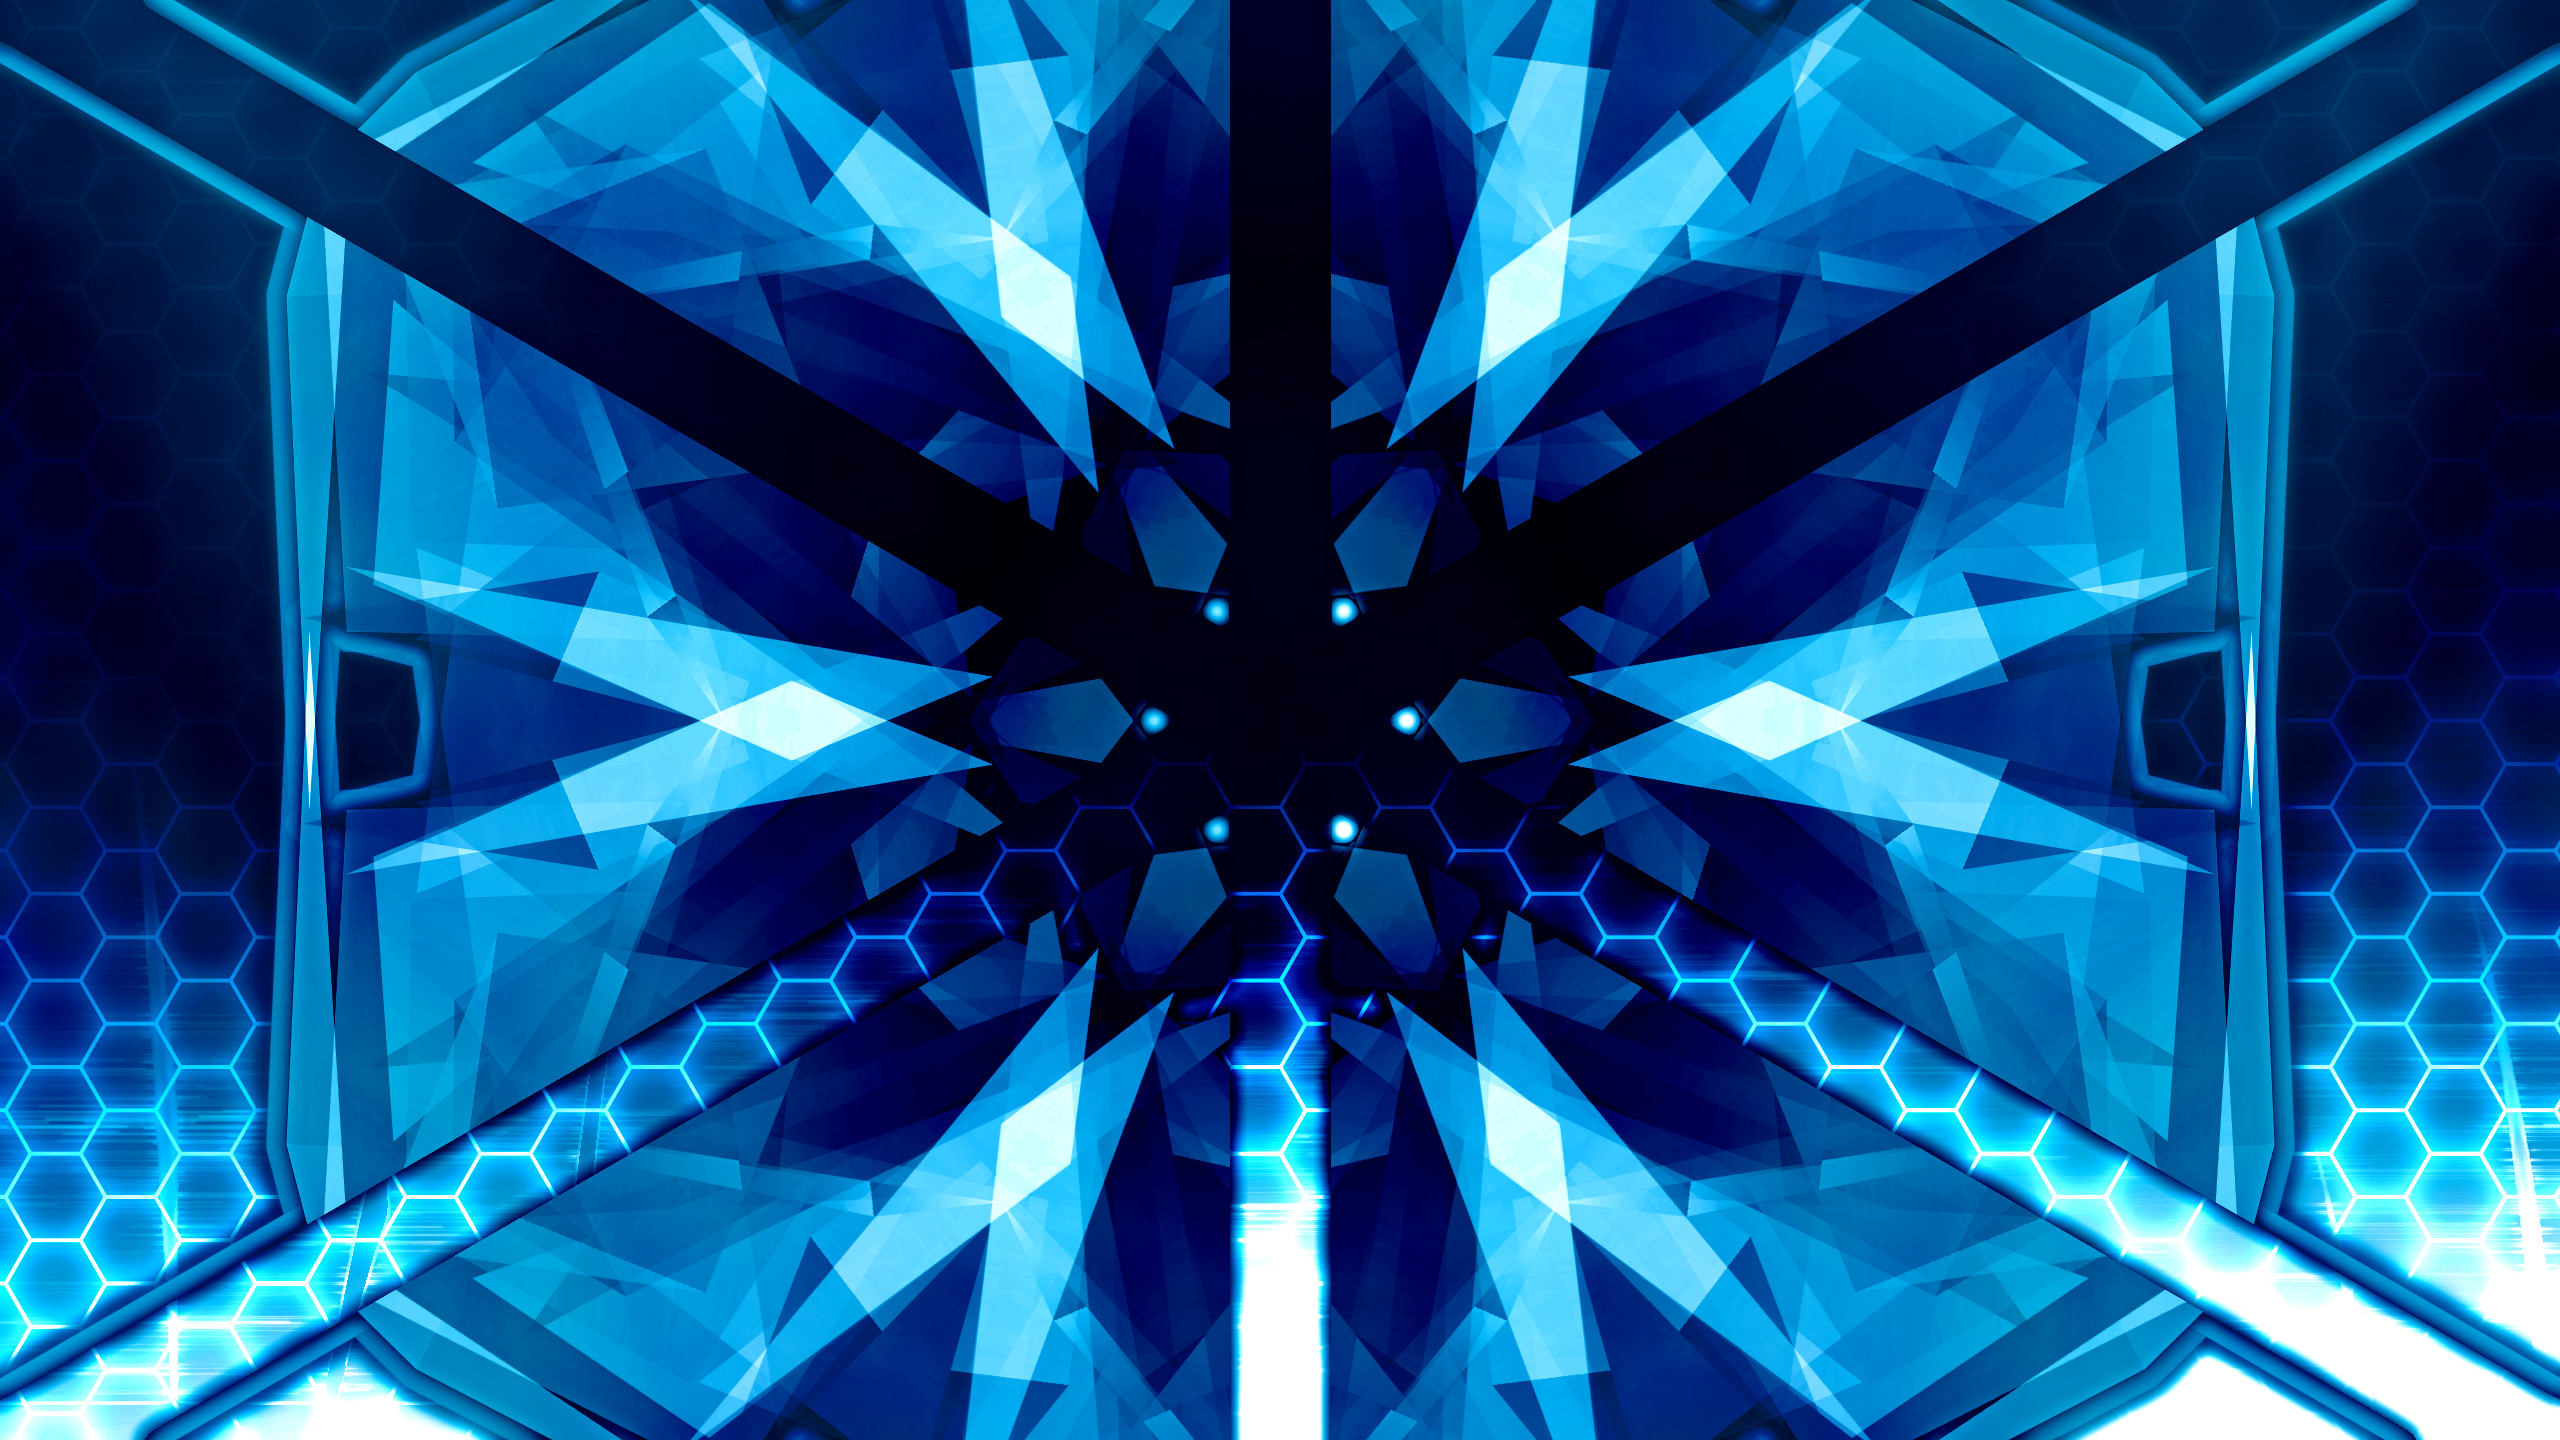 … Digital Blue by Game-BeatX14